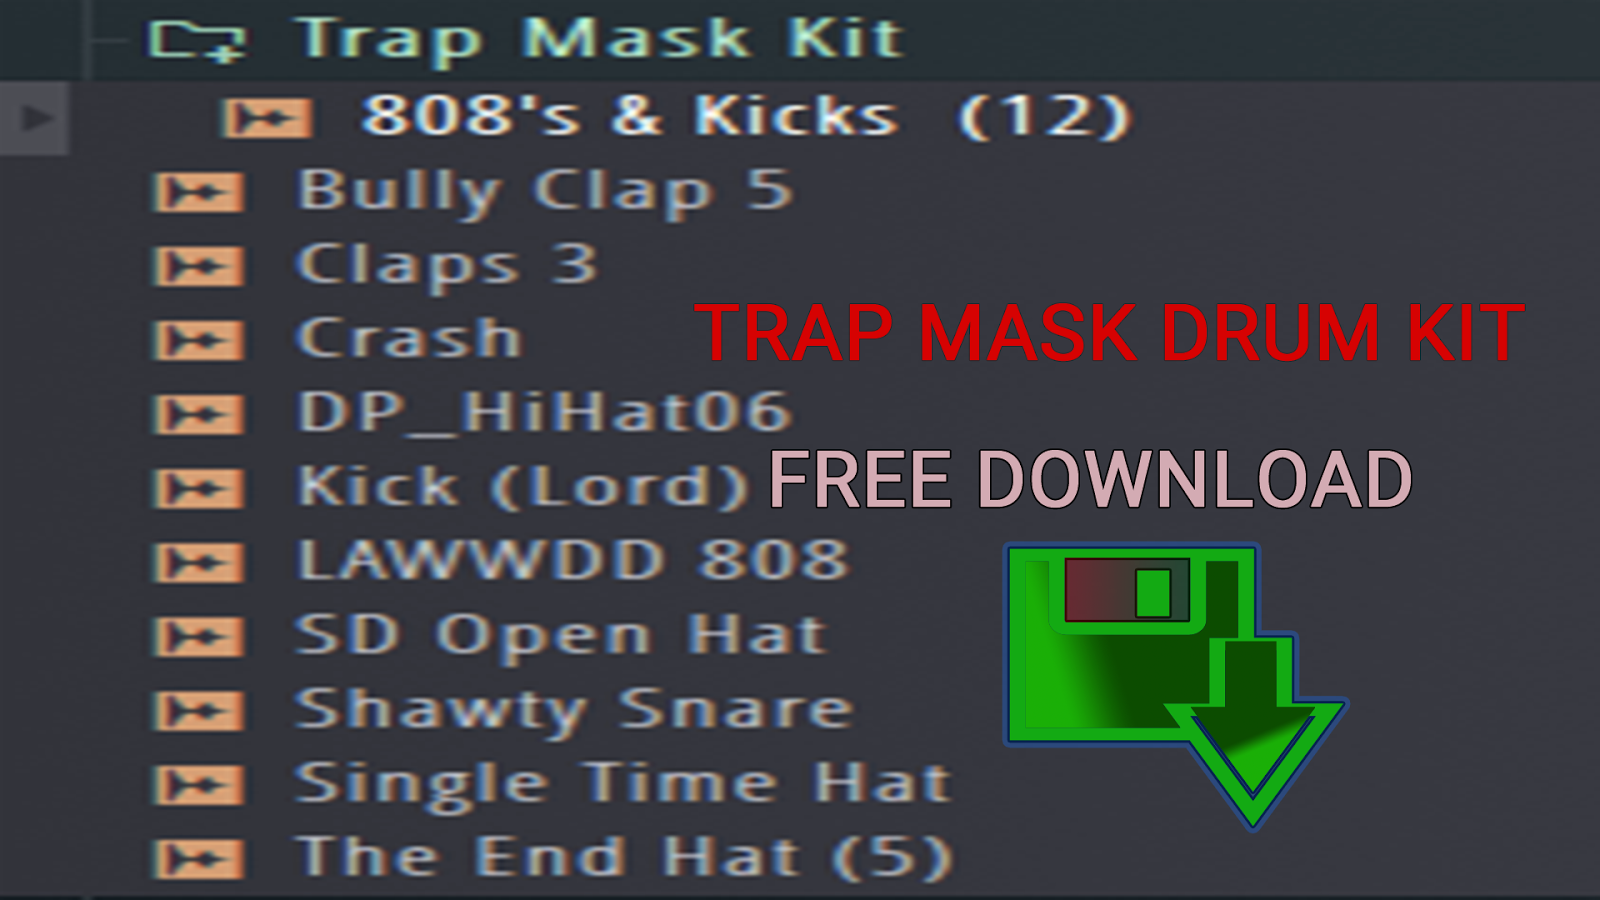 Trap Mask Drum Kit Free Download | Producer Support Center